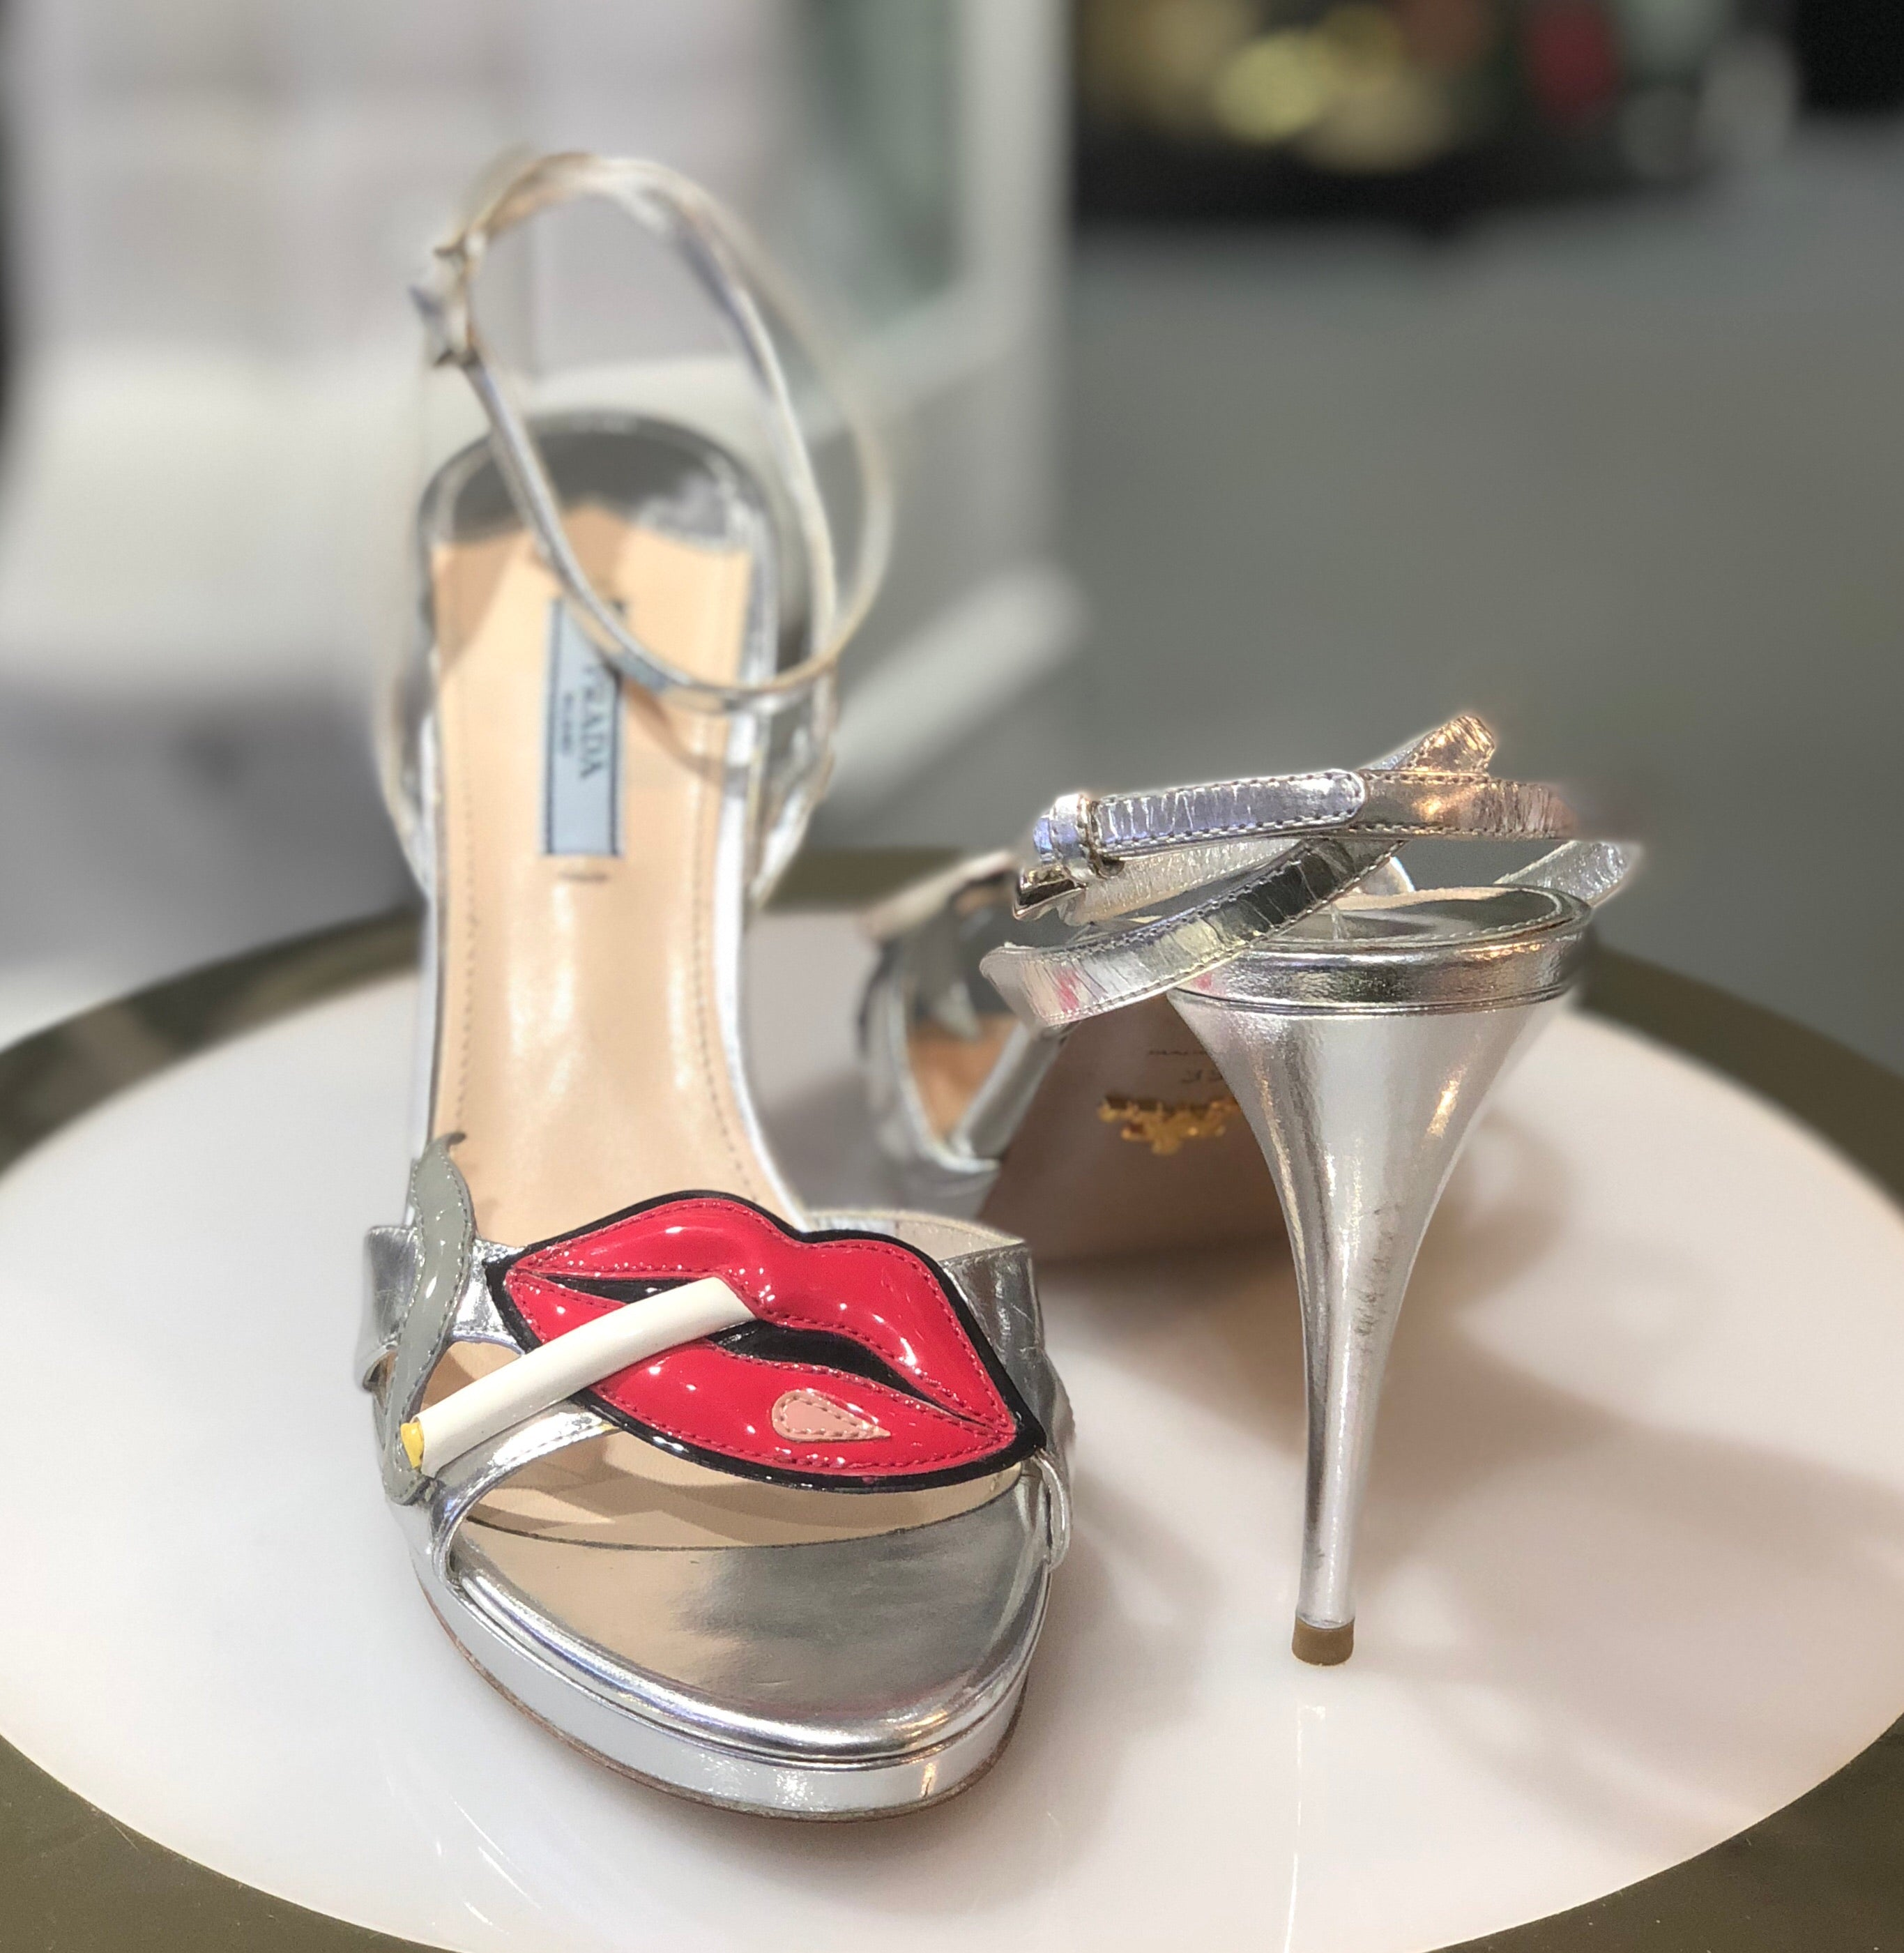 Prada lips and cigarette heels